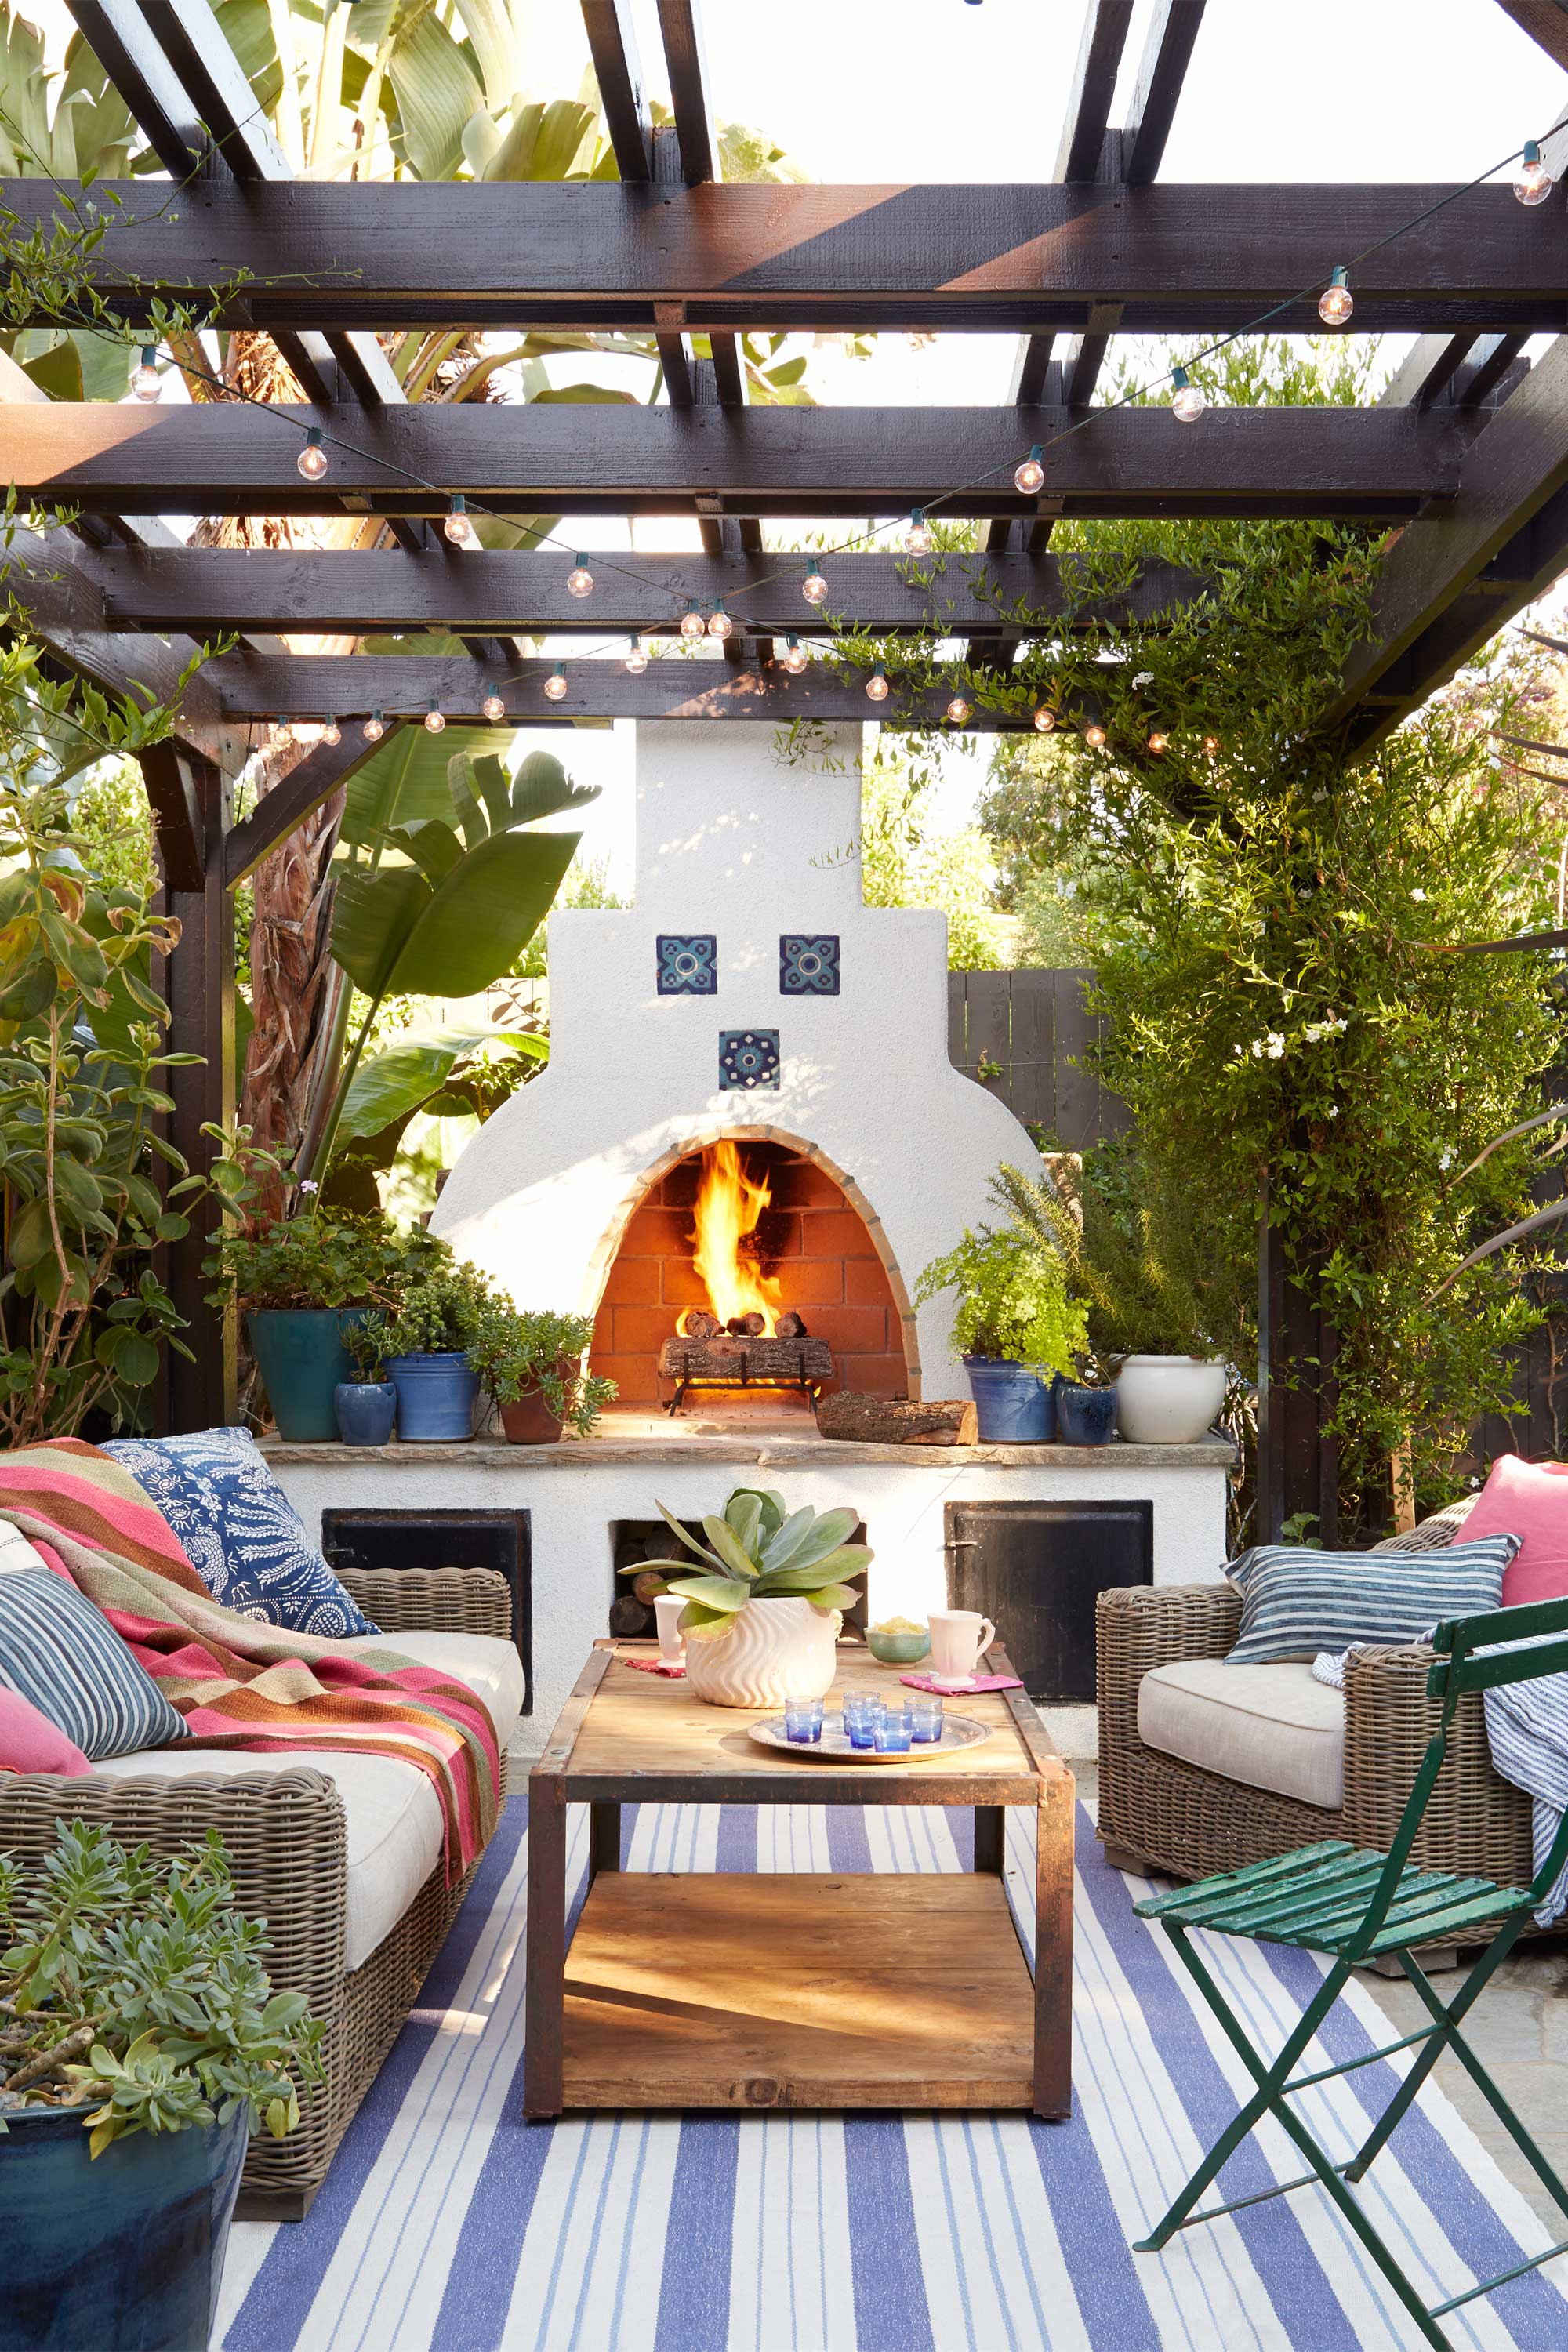 15 Best Outdoor Kitchen Ideas and Designs of Beautiful